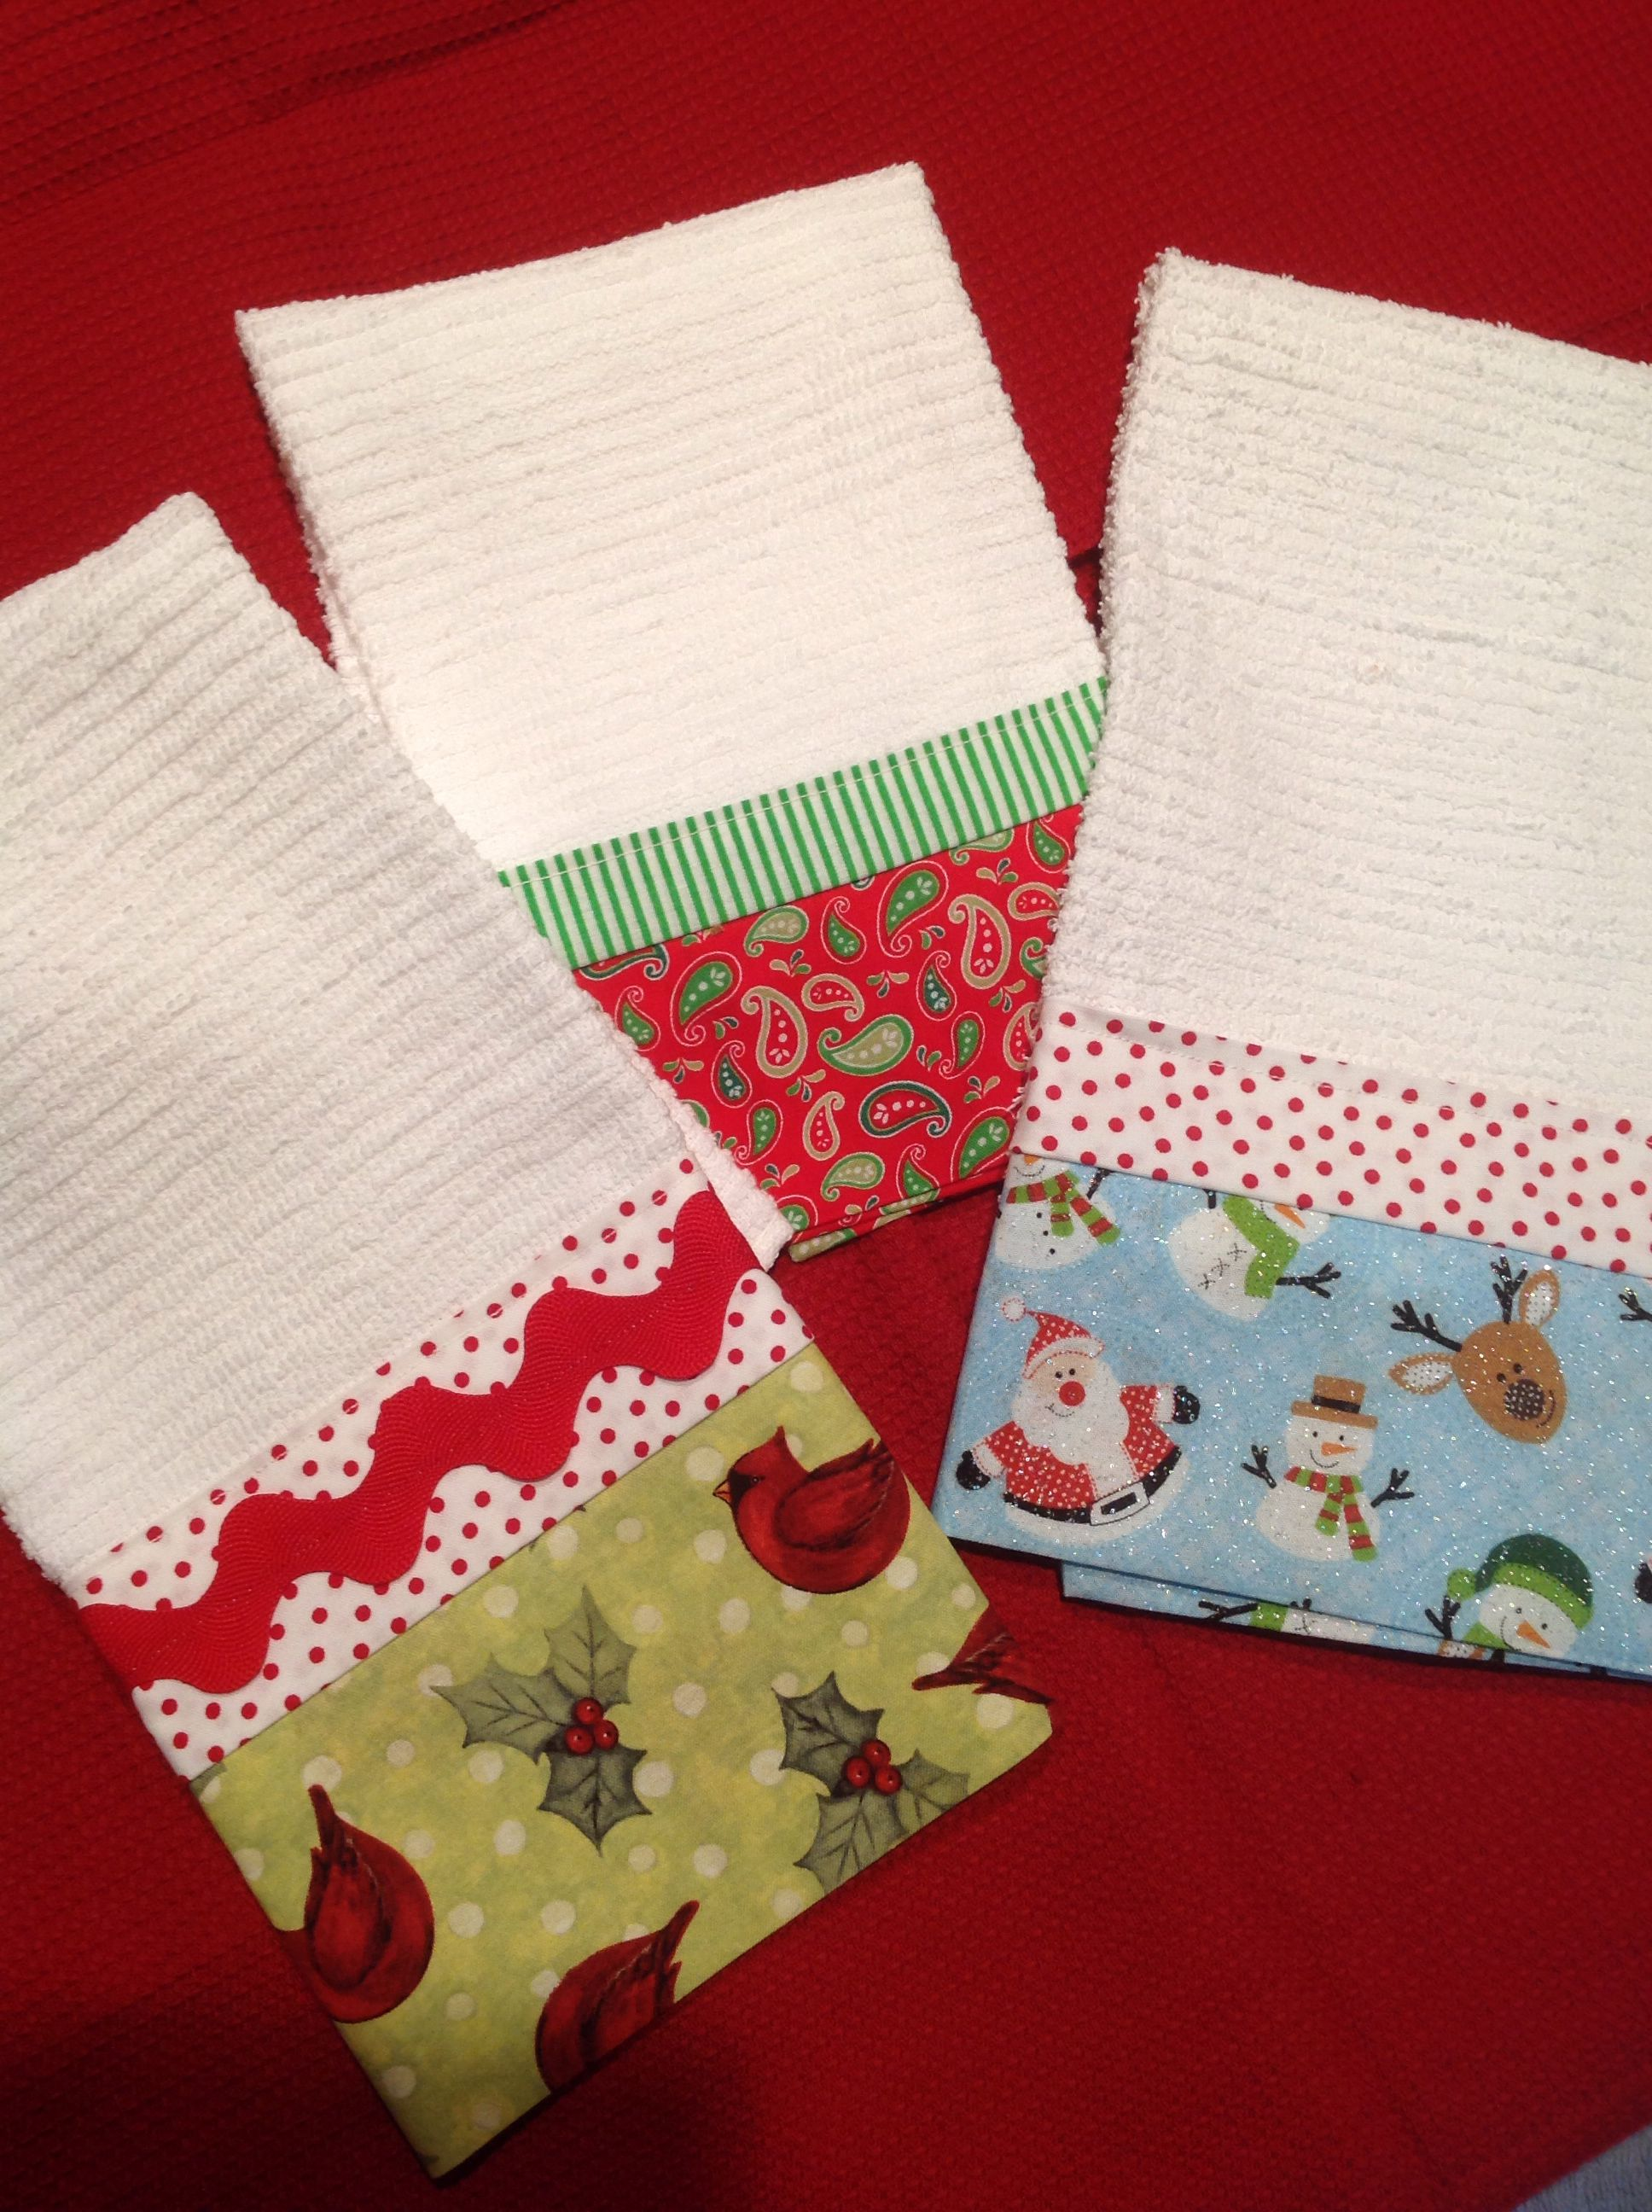 Open up the Christmas tea towels cut file(s) in Design Space (links are in the supply list). Change the sizes and colors to your preference. When you're ready to cut the iron-on vinyl for your Christmas tea towels, don't forget to mirror your text.